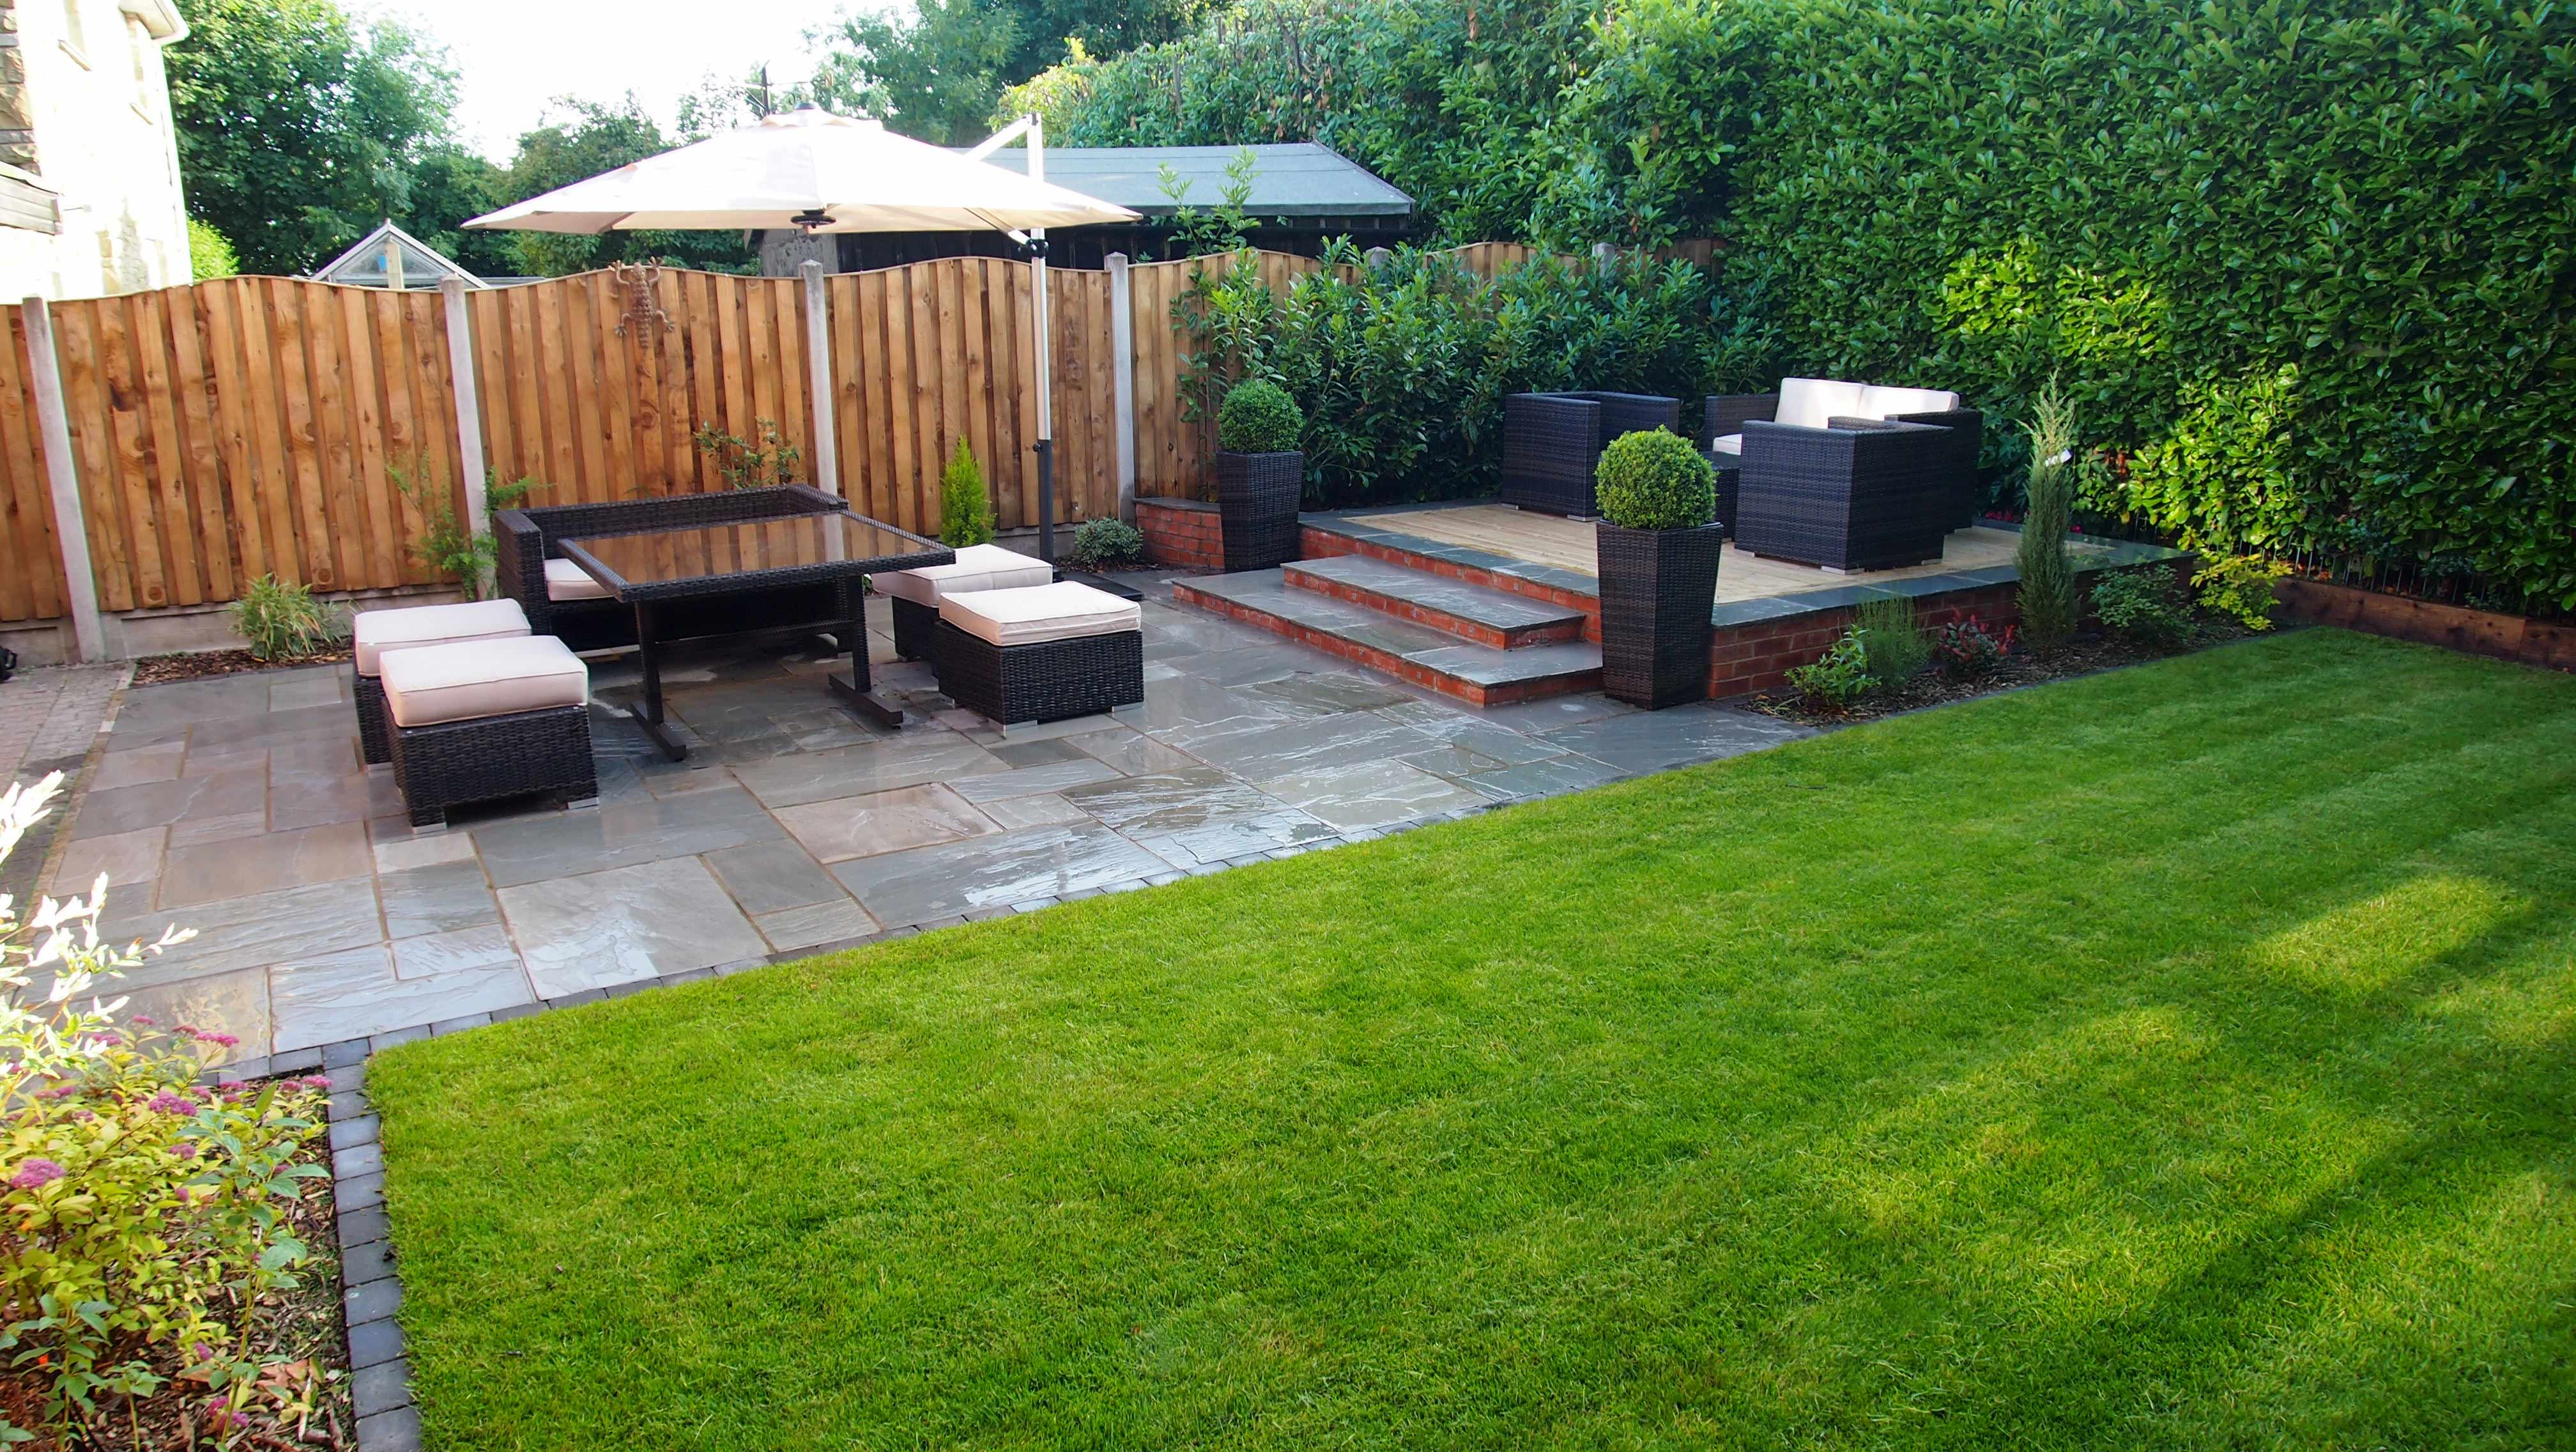 Landscape Gardeners Sheffield Landscaper in wakefield leeds marshalls landscaping landscaping in leeds and wakefield workwithnaturefo